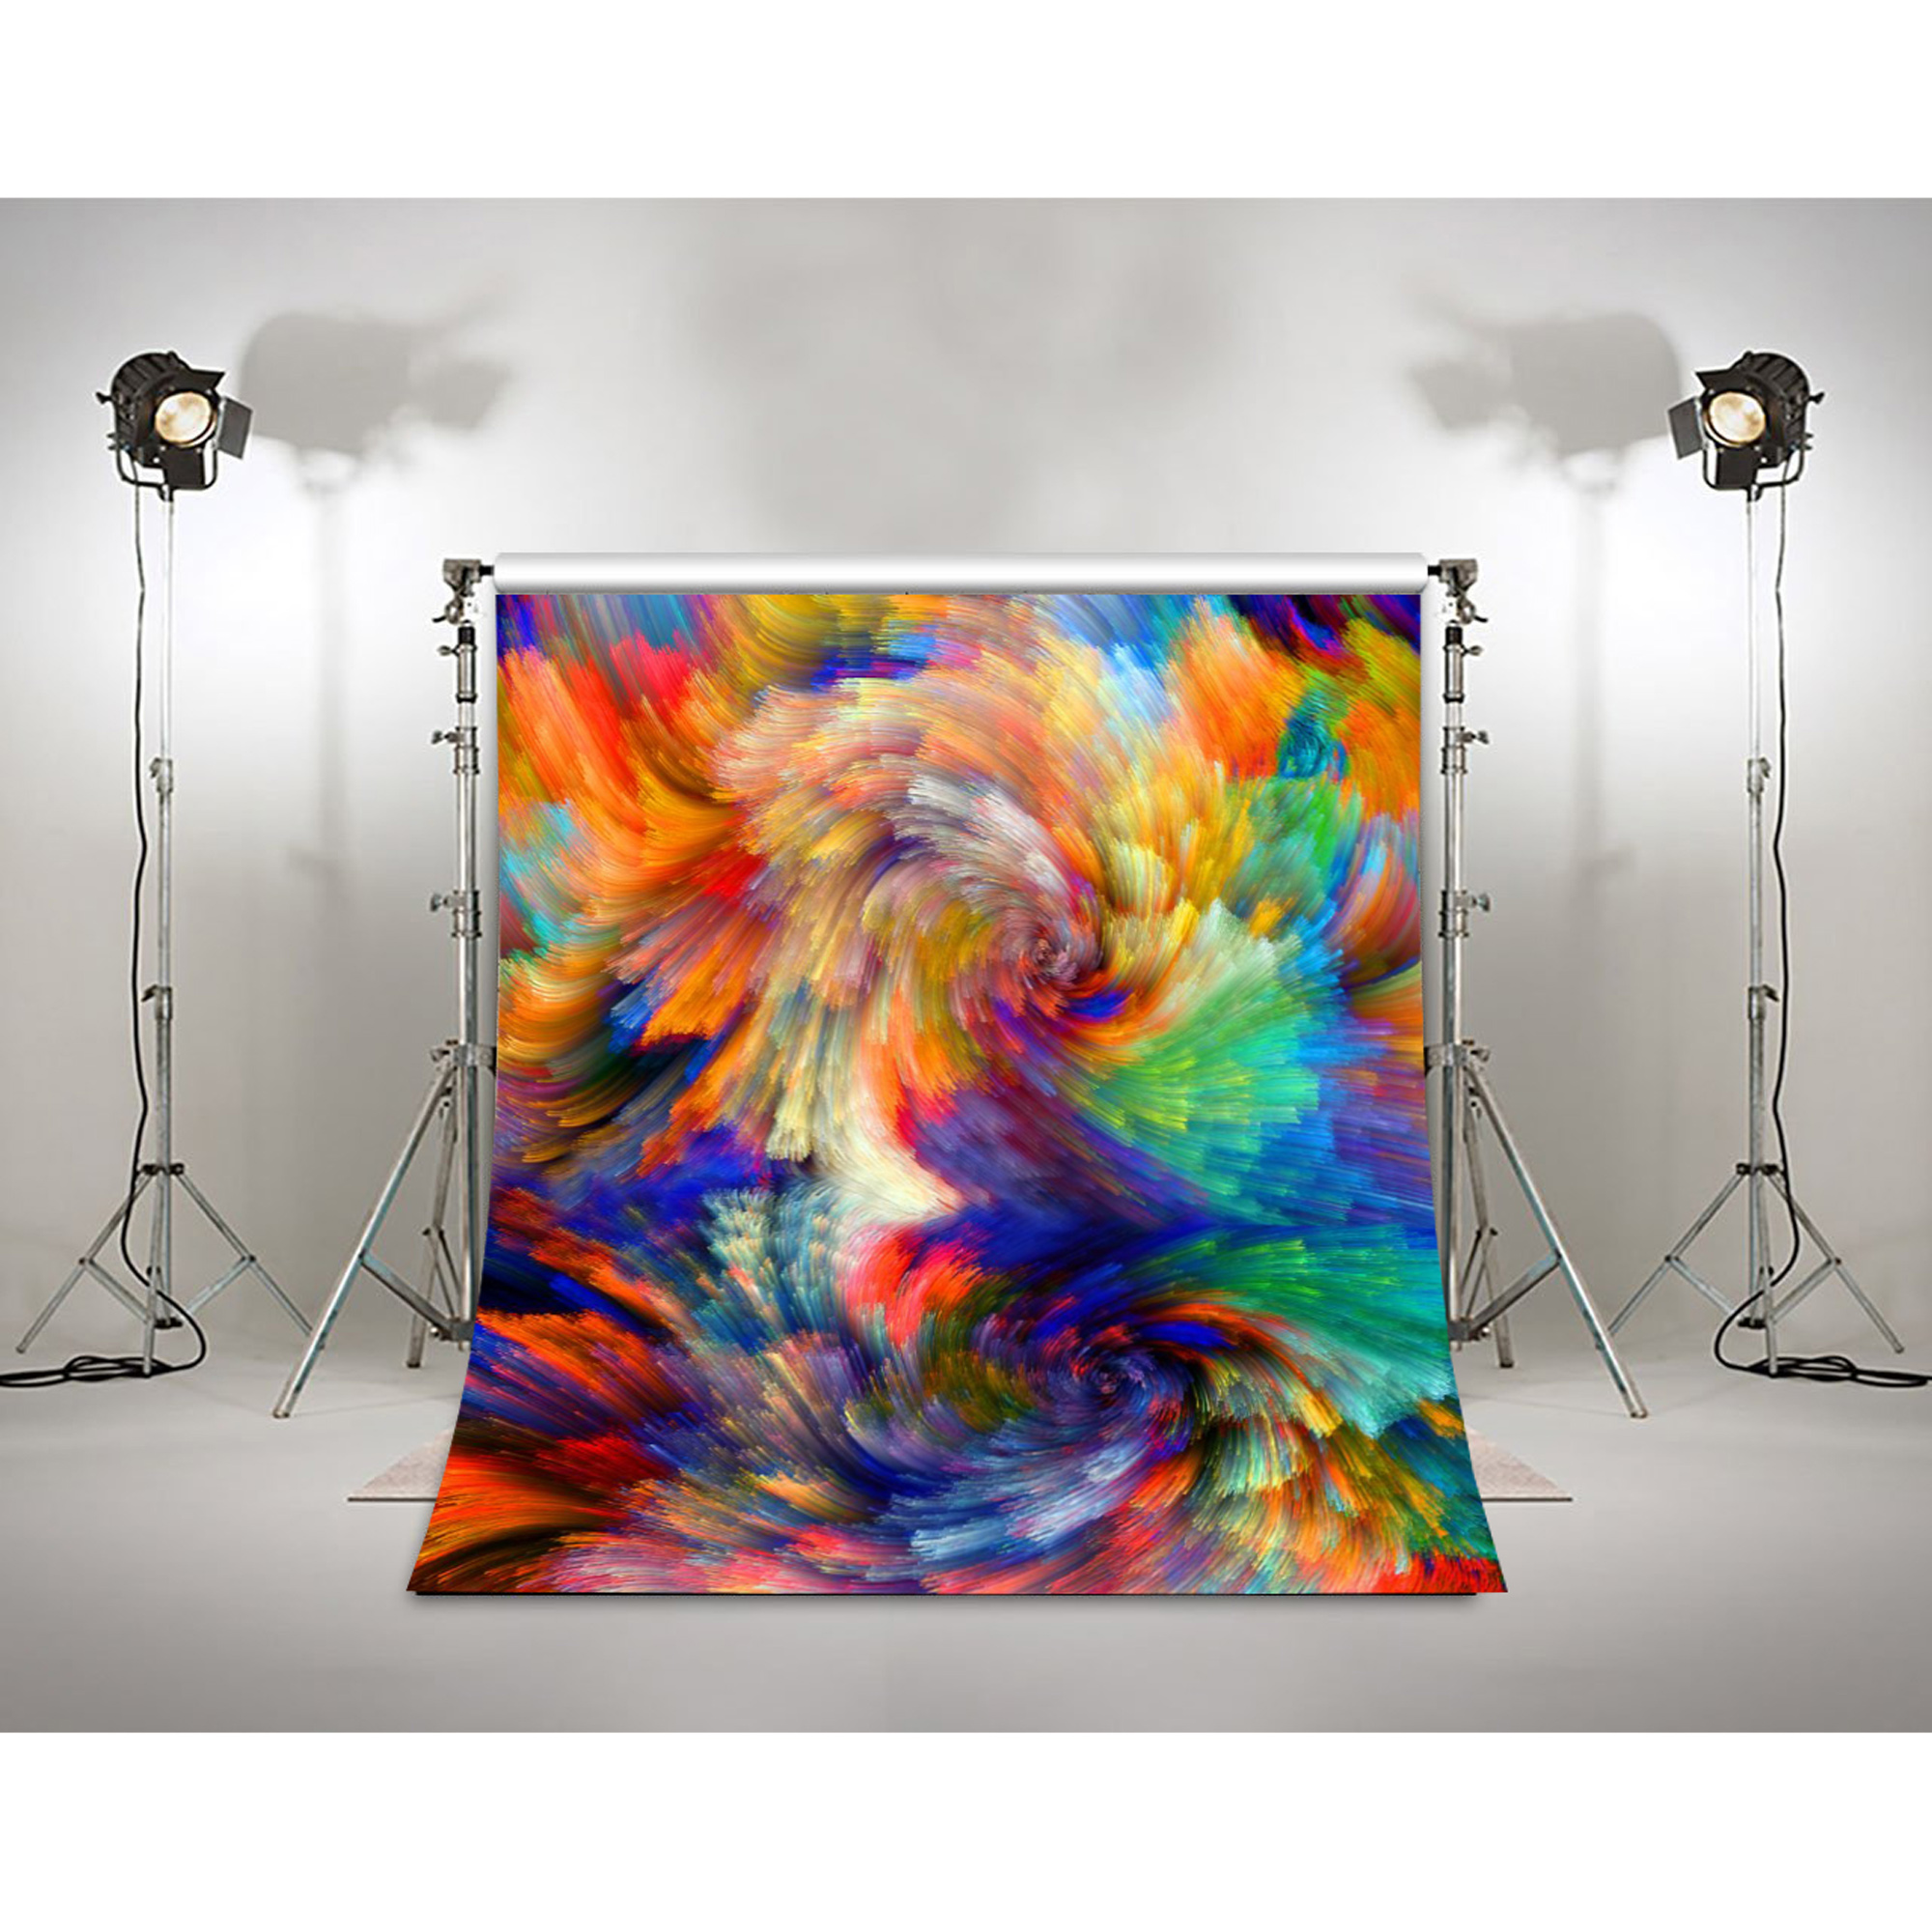 10x10FT Vinyl Wall Photography Backdrop,Colorful,Abstract Curvy Landscape Background for Baby Birthday Party Wedding Studio Props Photography